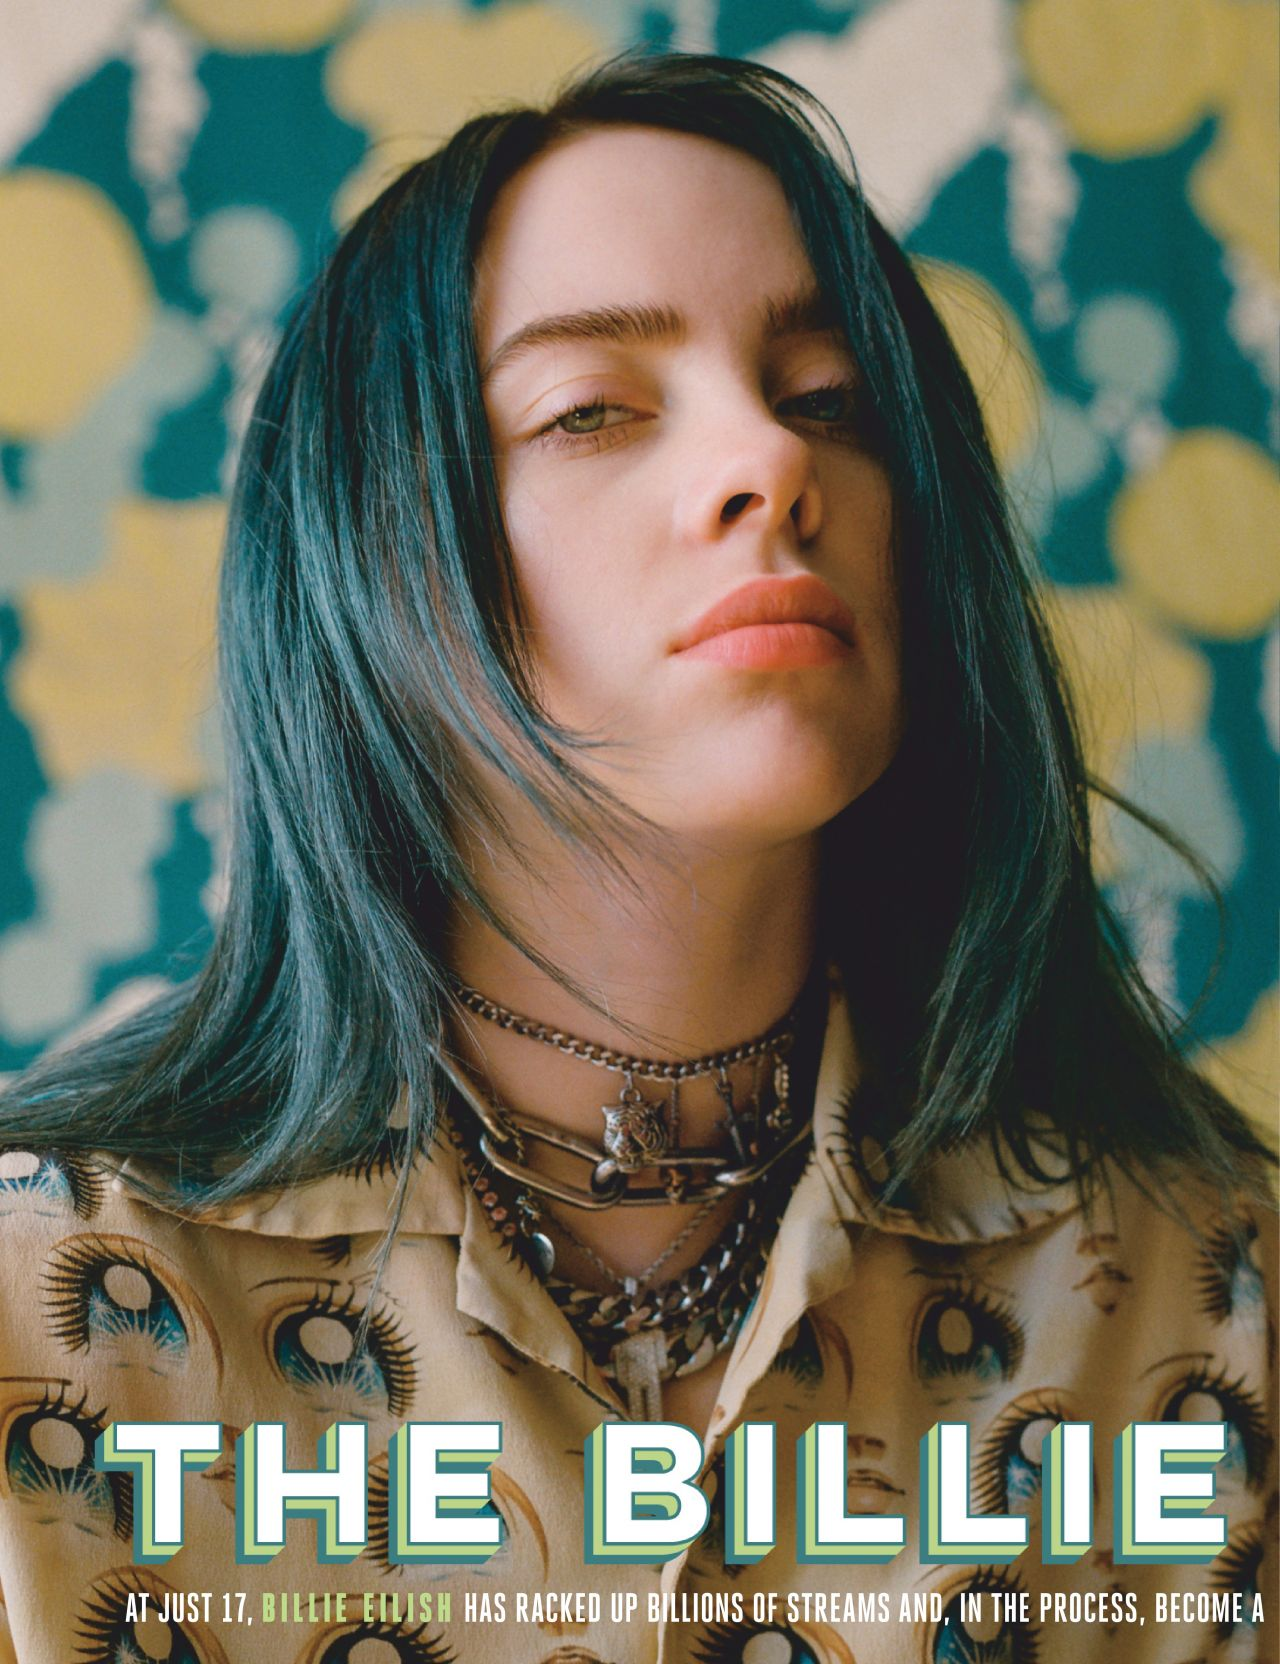 Billie Eilish Billboard Magazine 05 11 2019 Issue Celebmafia